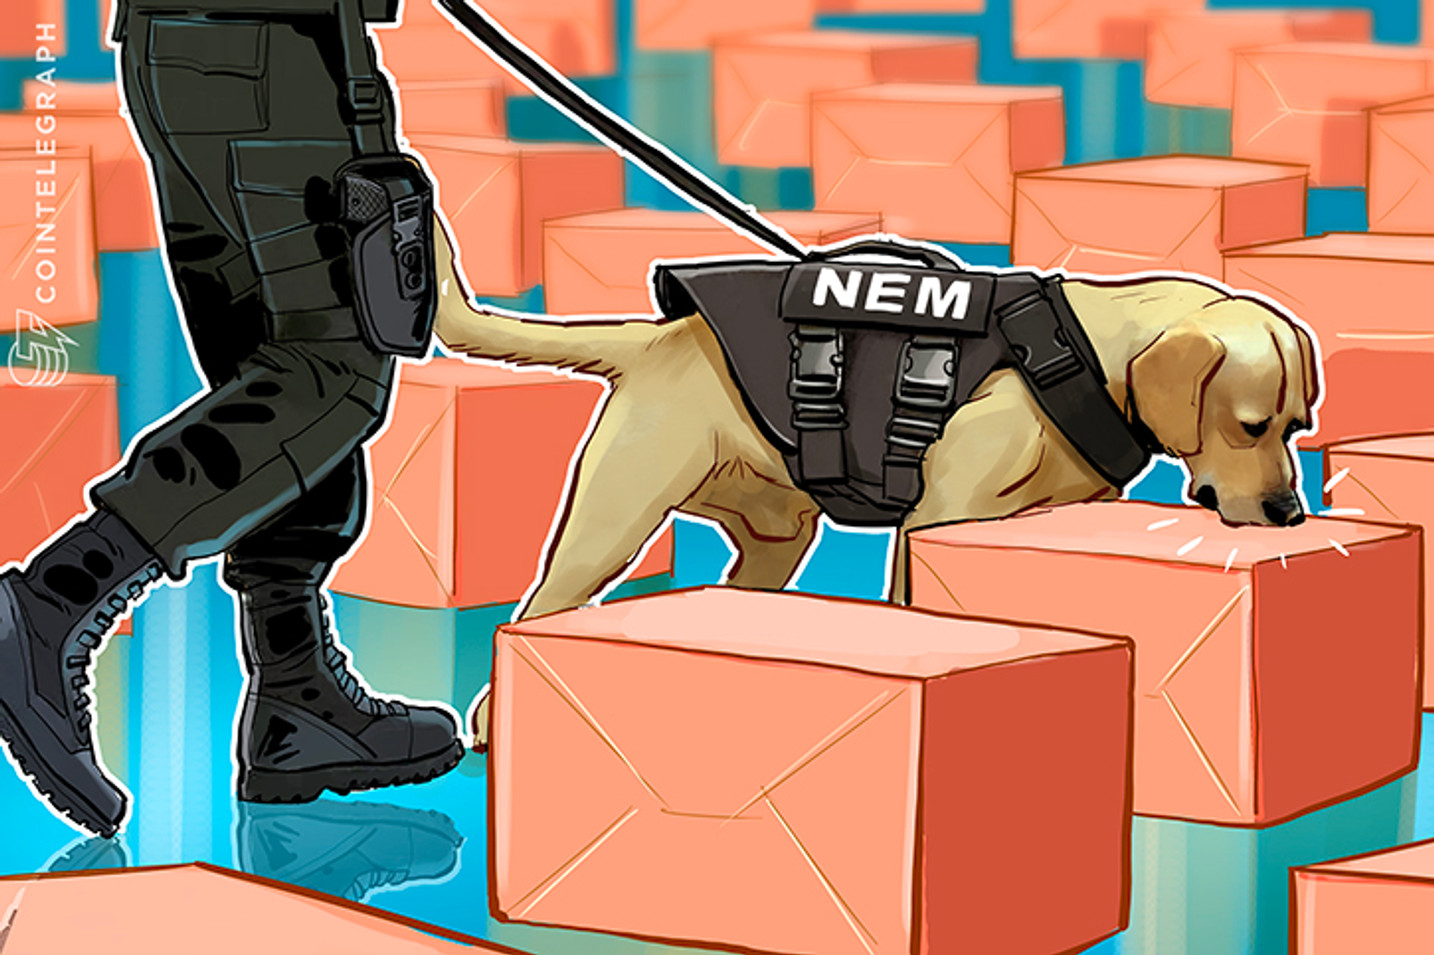 $530 Mln in XEM Stolen From Coincheck Can Be Traced, NEM Team Confirms